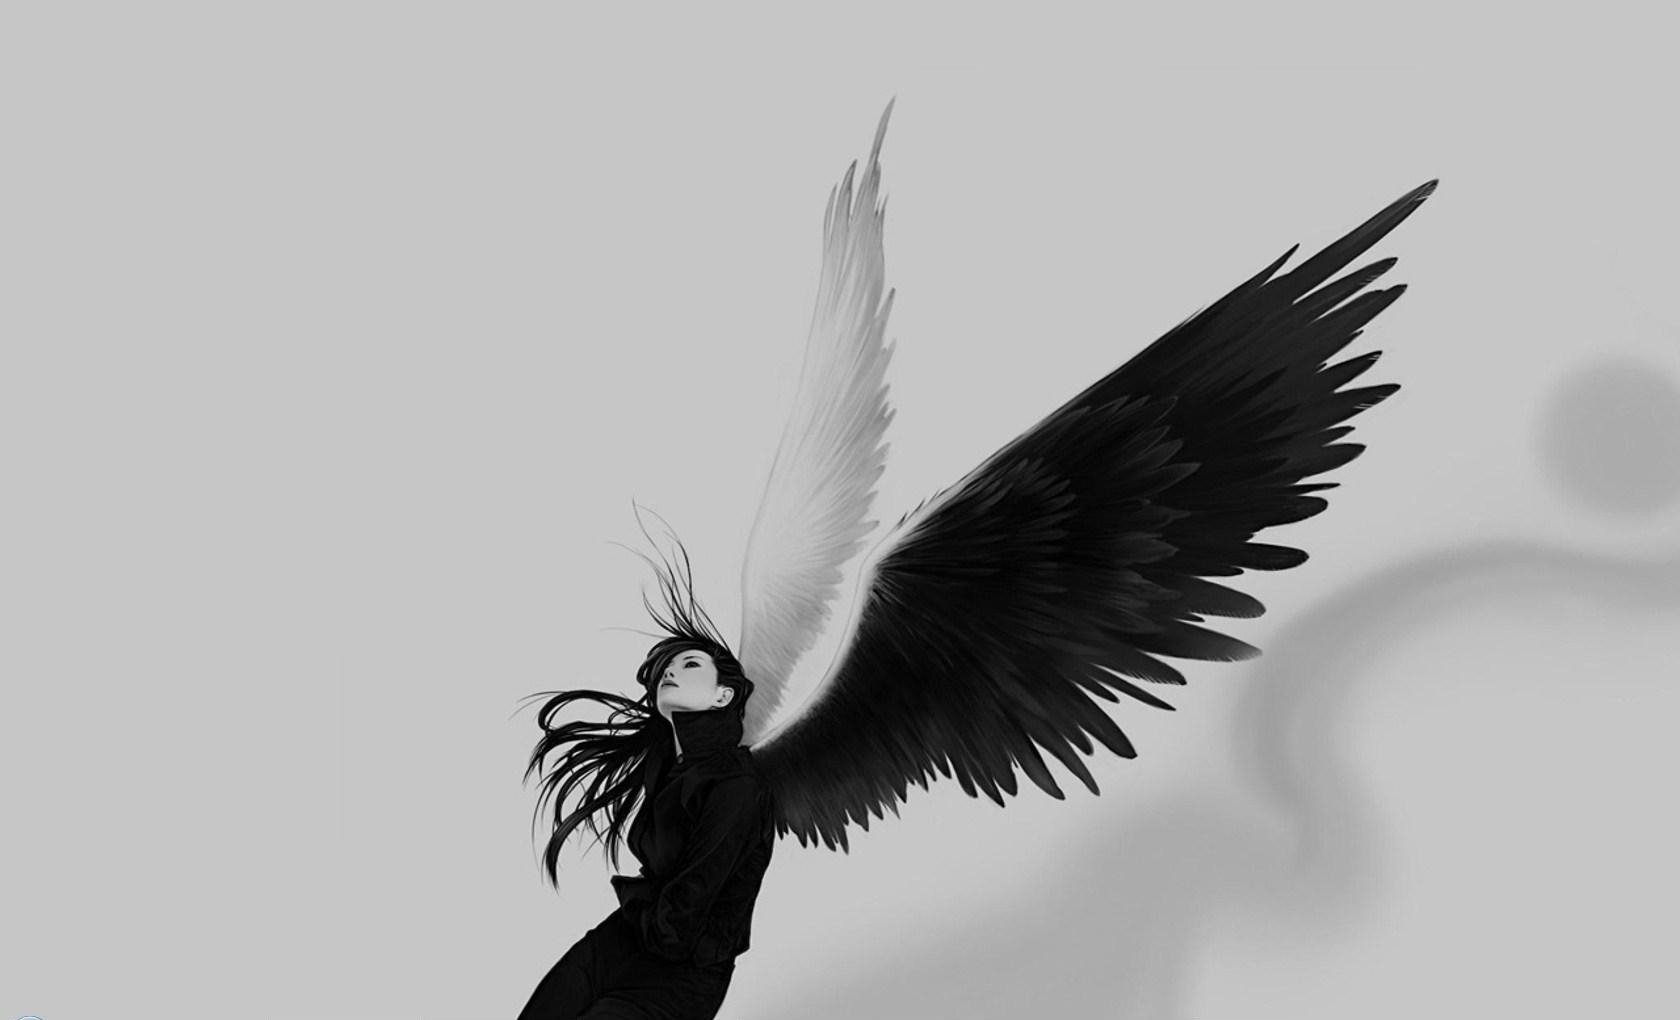 Wallpaper Black Angel